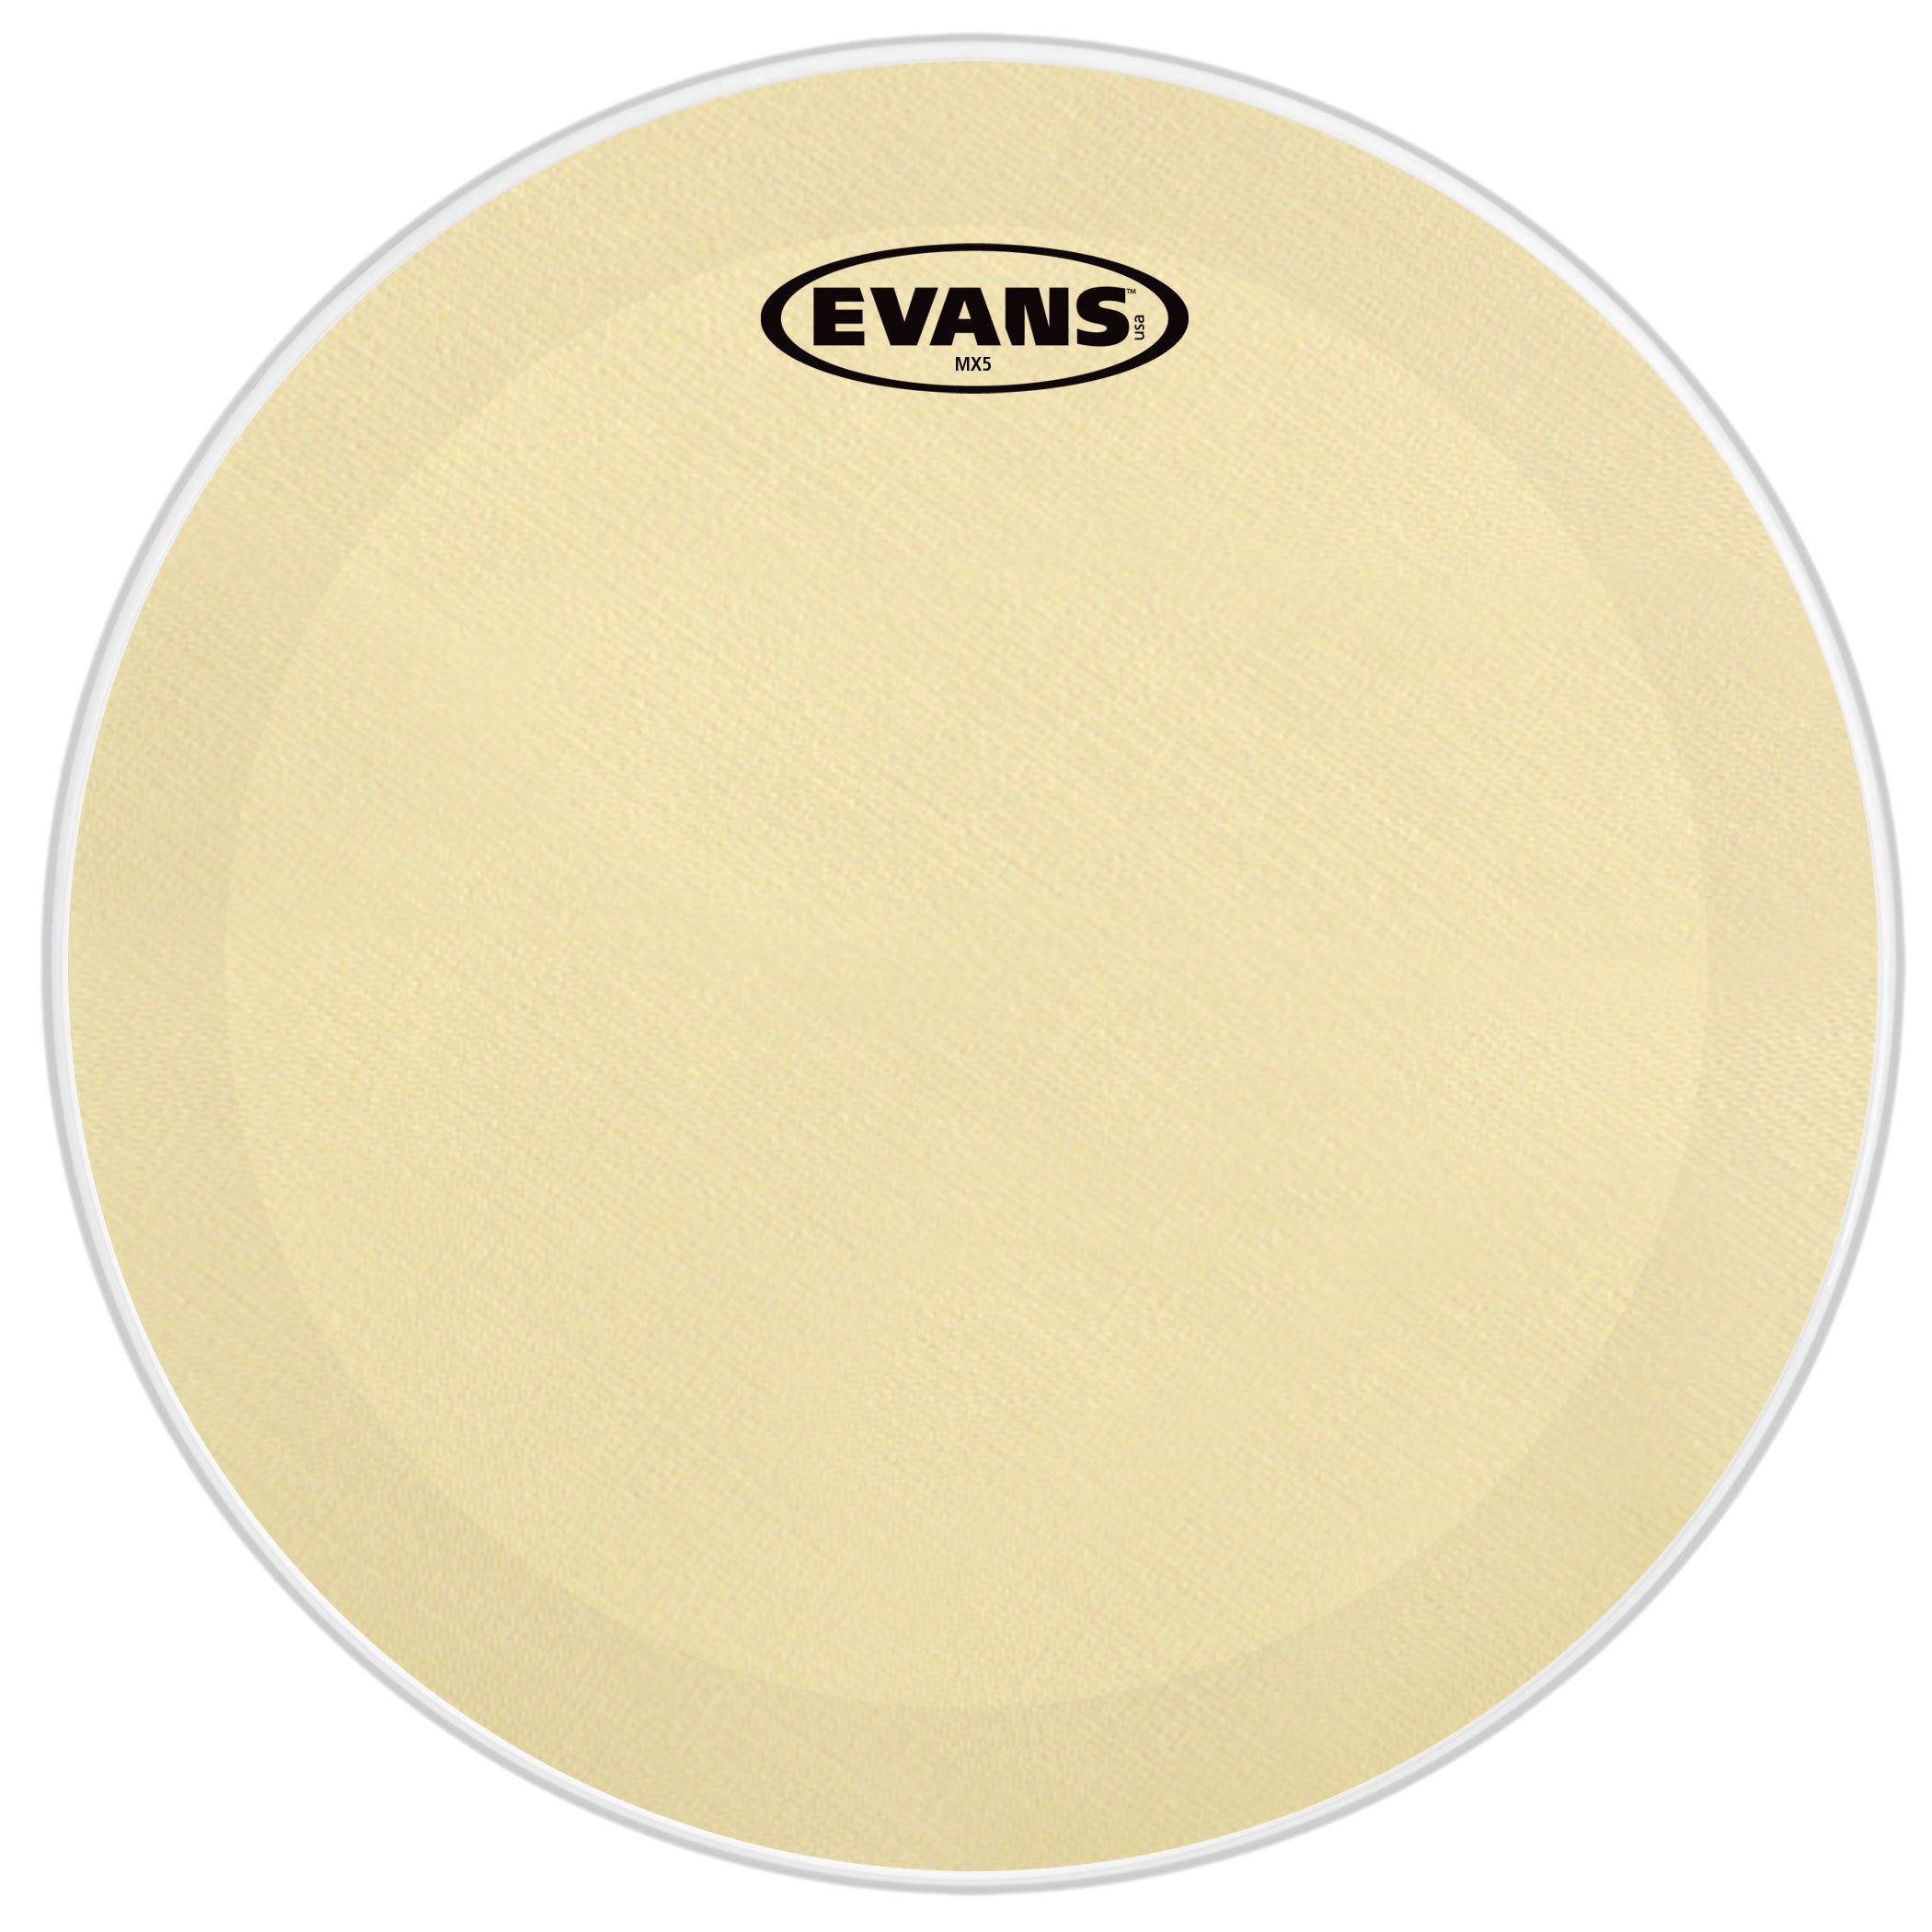 "Evans 14"" MX5 Marching Snare Bottom Head"